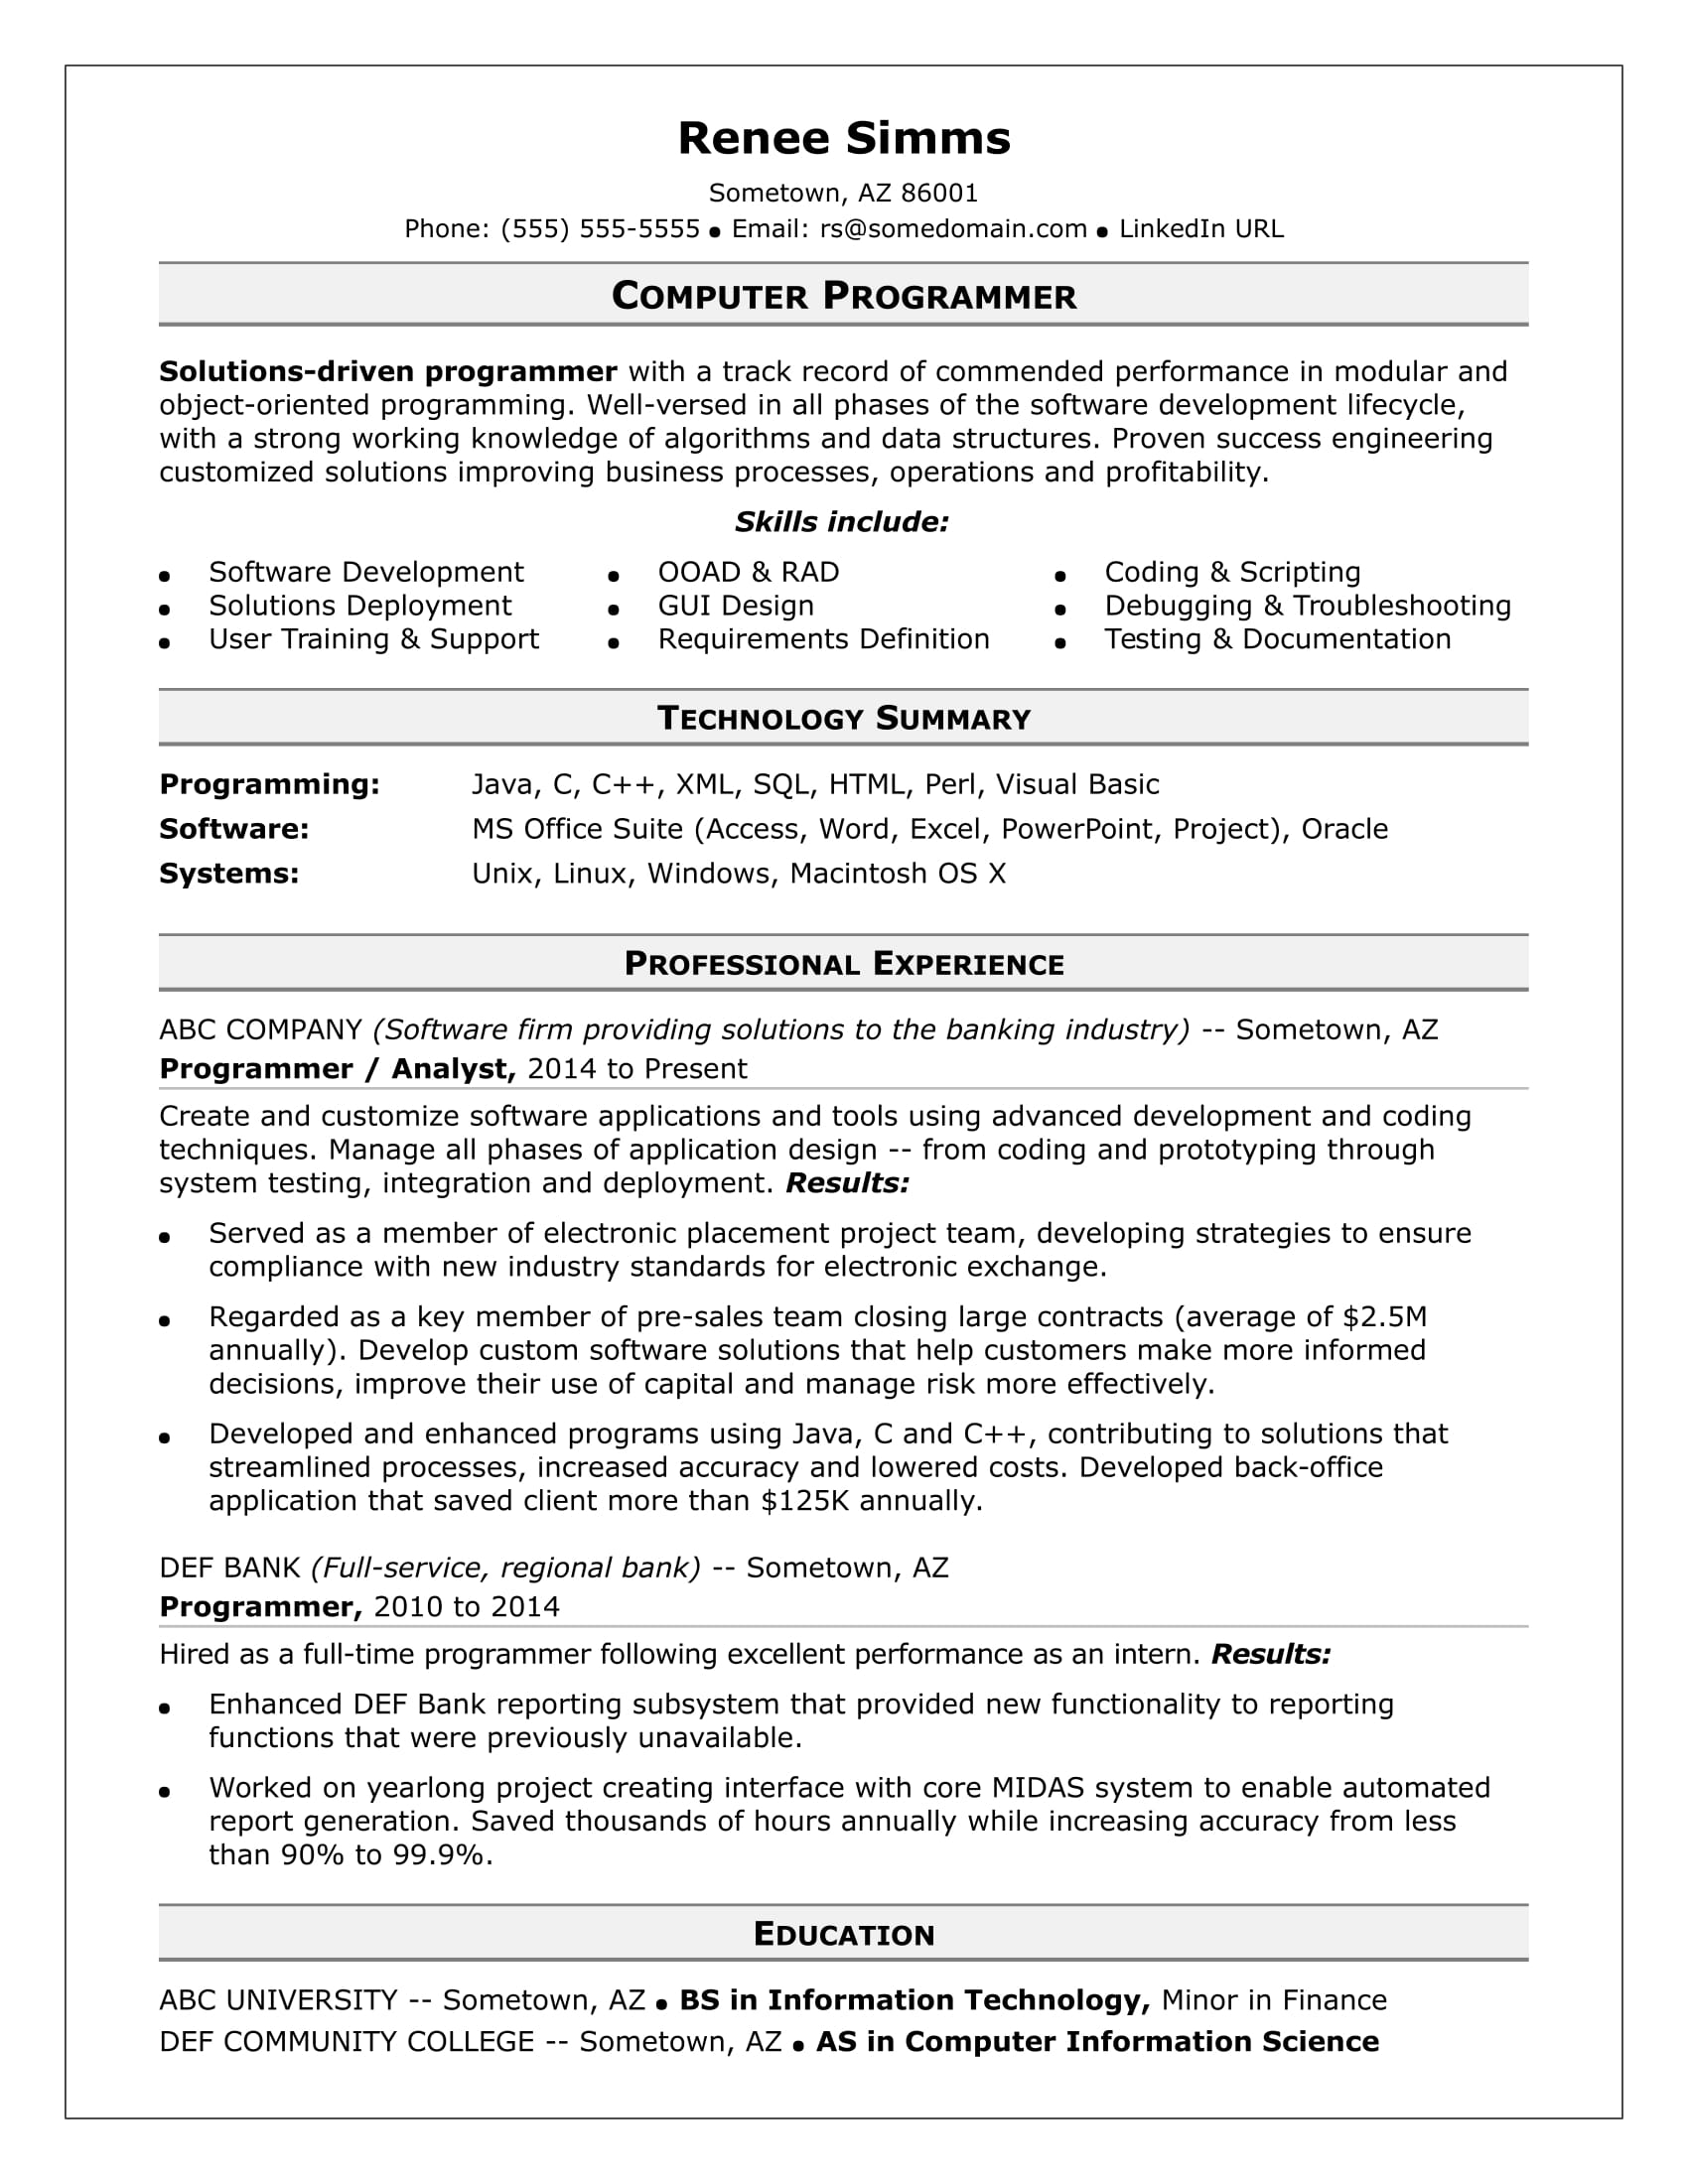 sample resume for a midlevel computer programmer - Computer Programming Resume